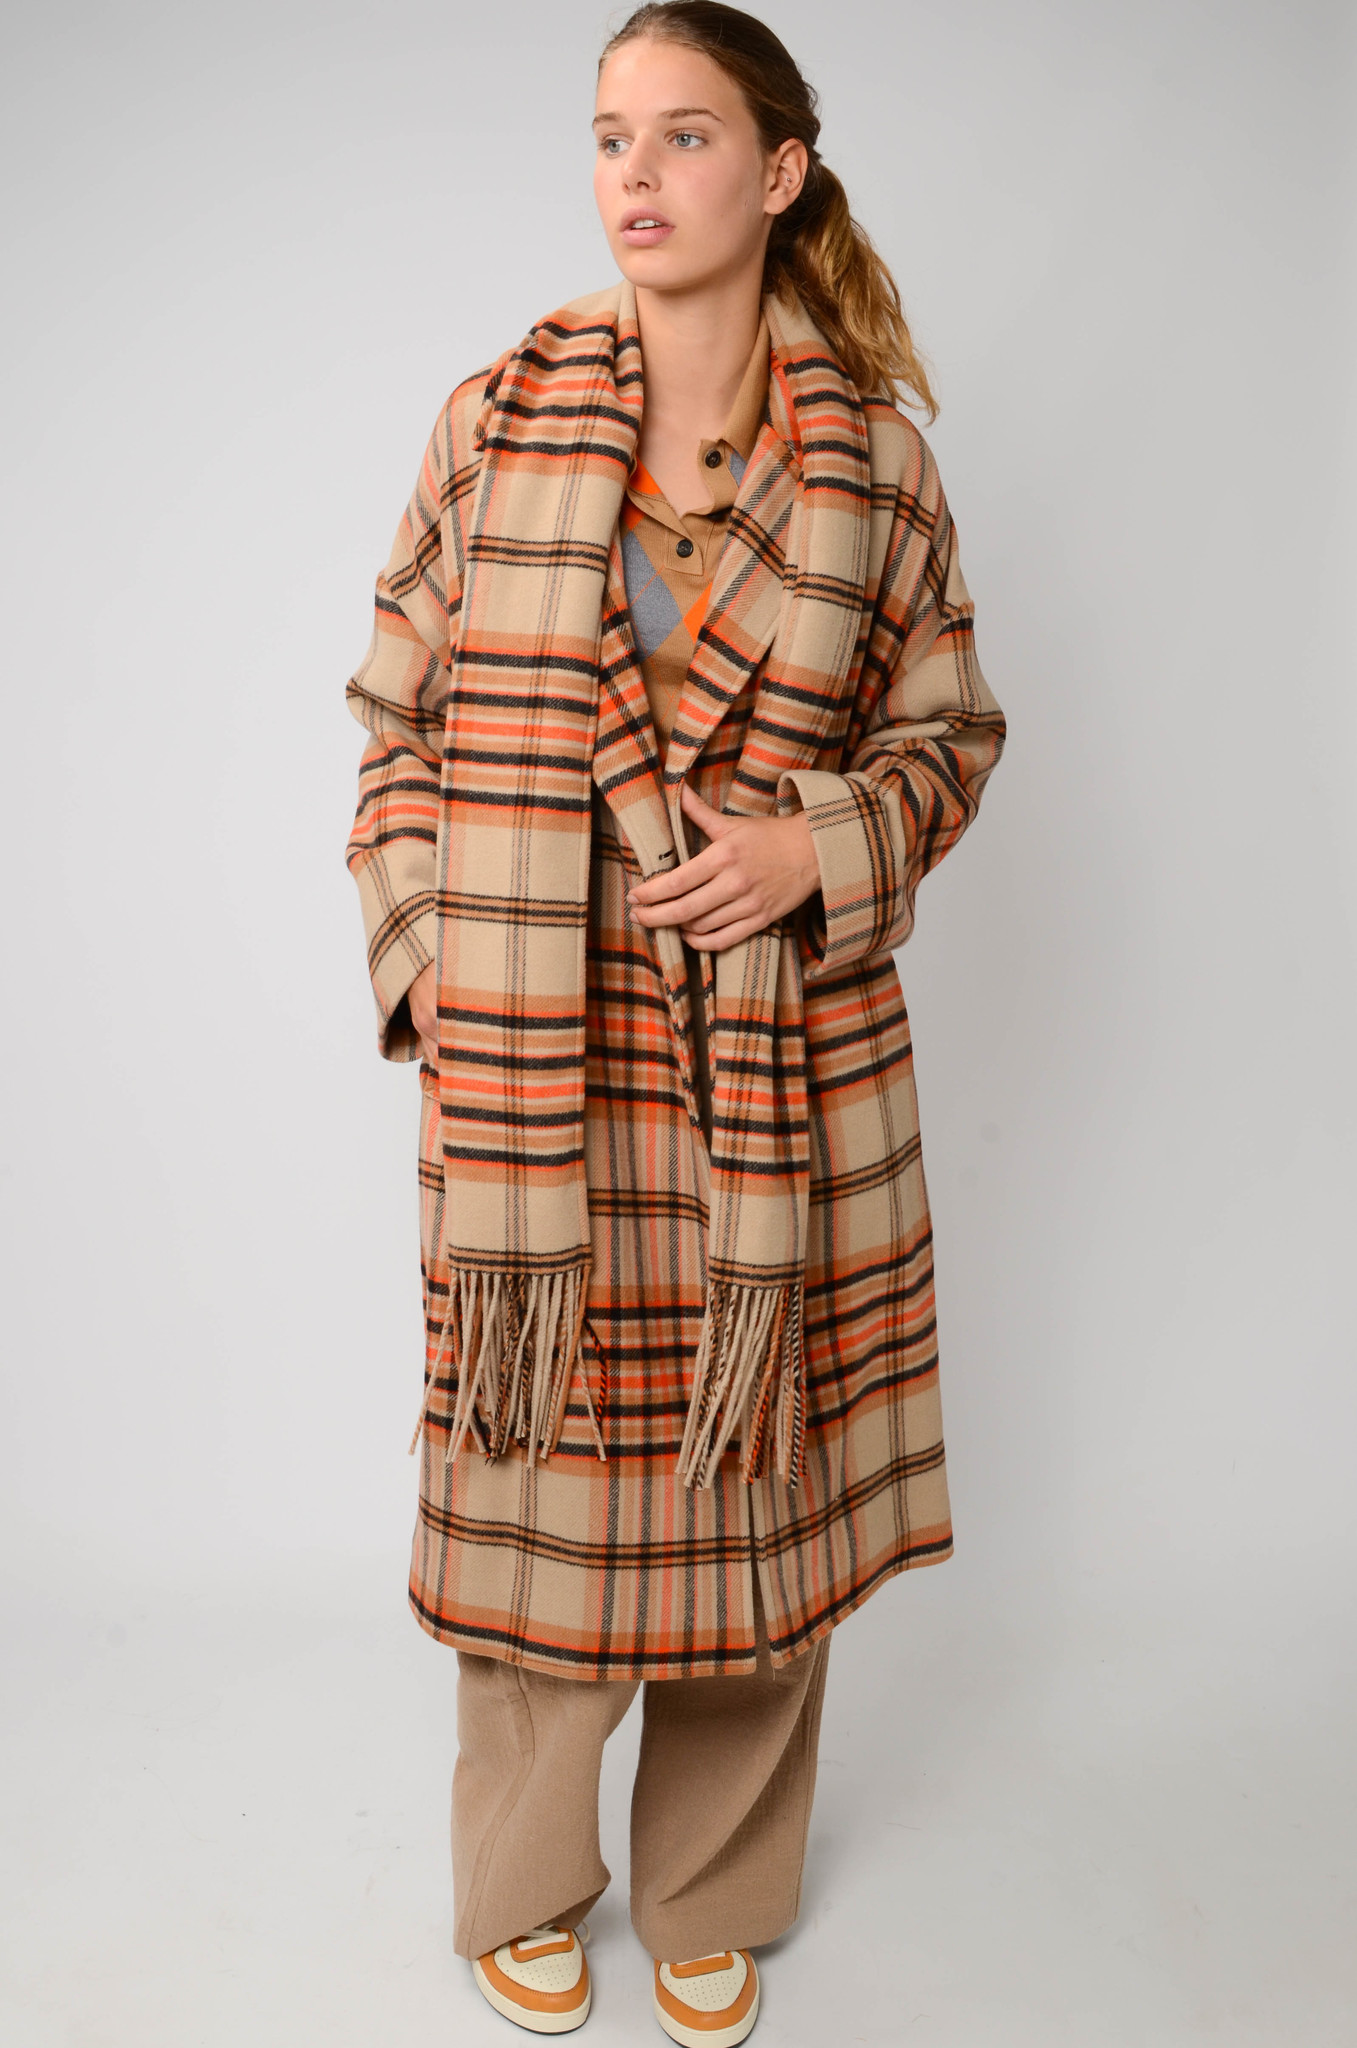 CHECKERED COAT IN ORANGE AND CAMEL-2